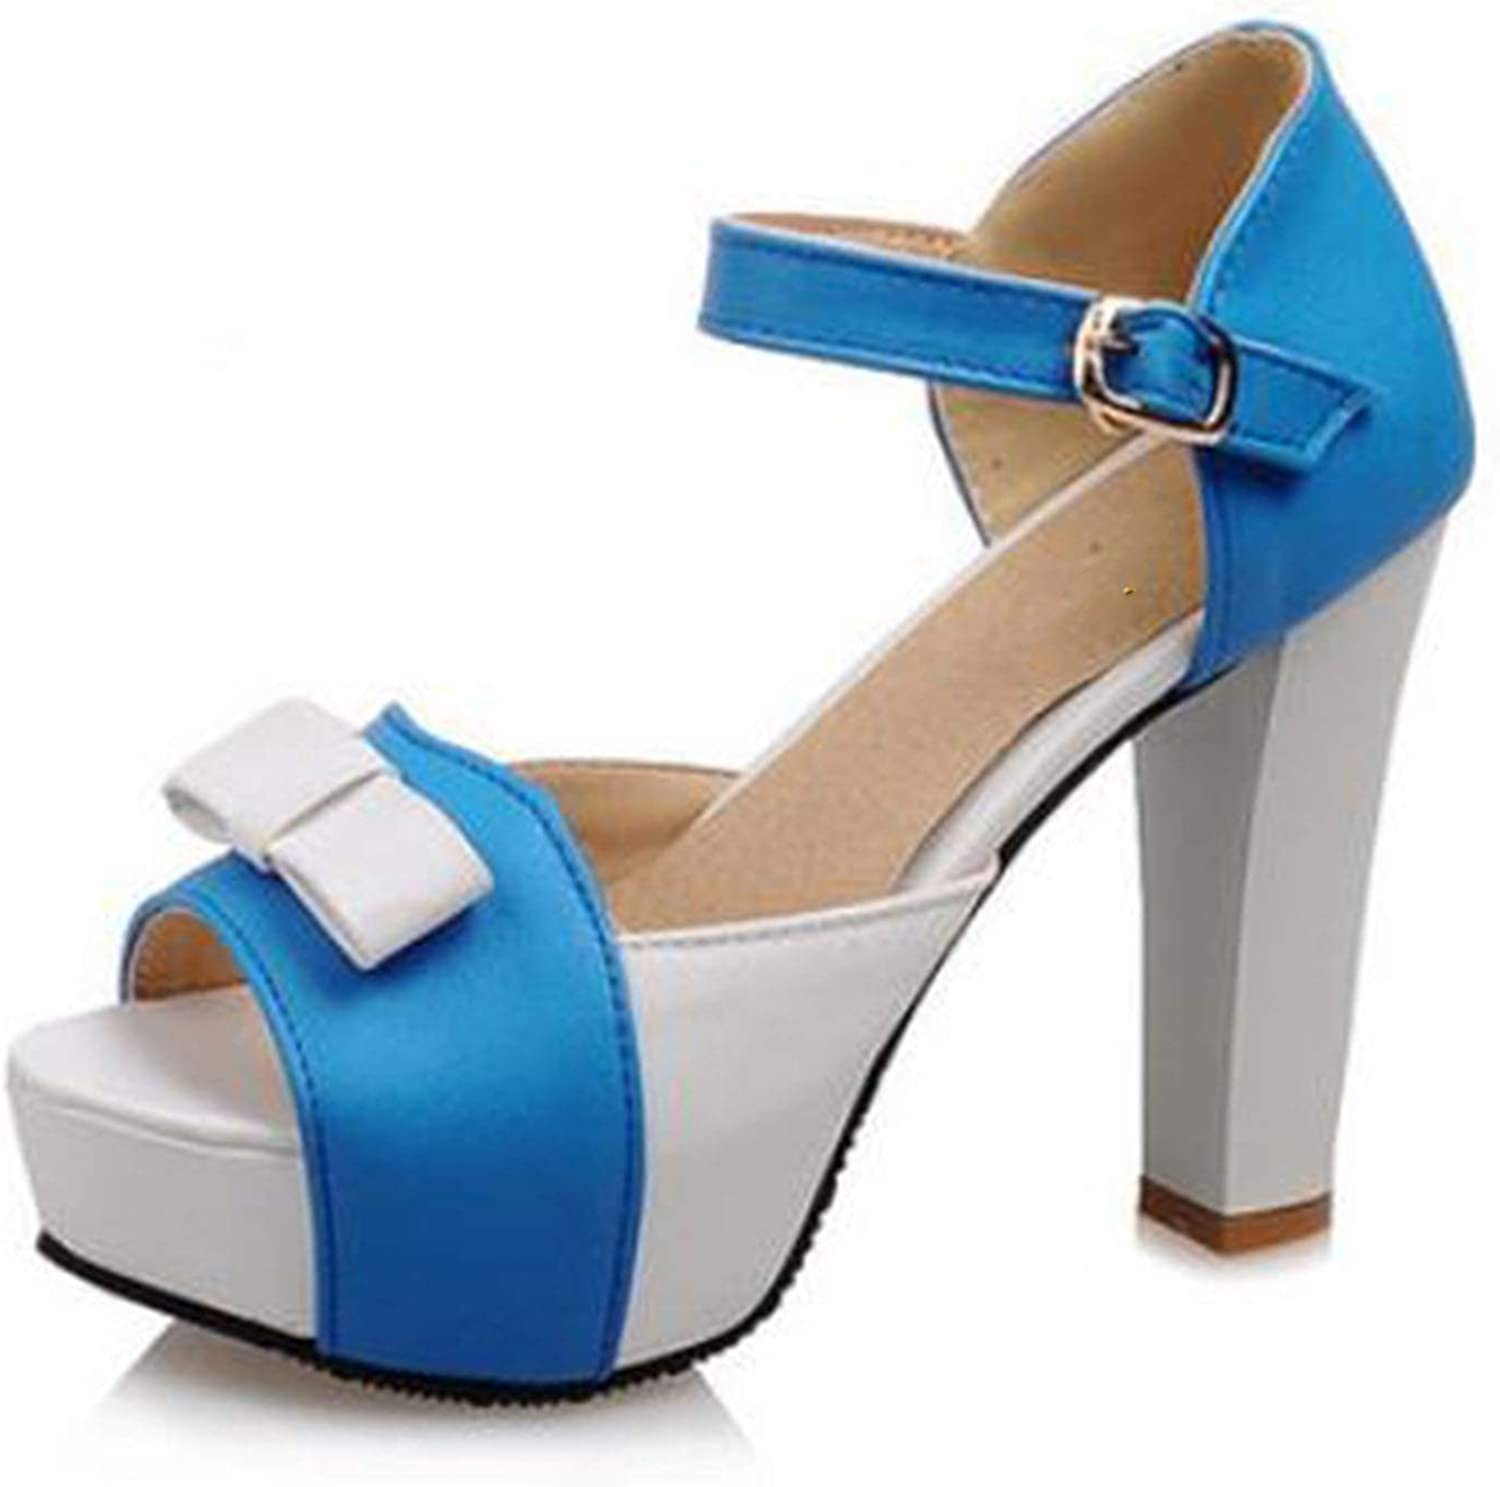 Fairly High Heel Fashion Bowtie Open Toe Platform shoes Thick Heels Ladies shoes,bluee,5